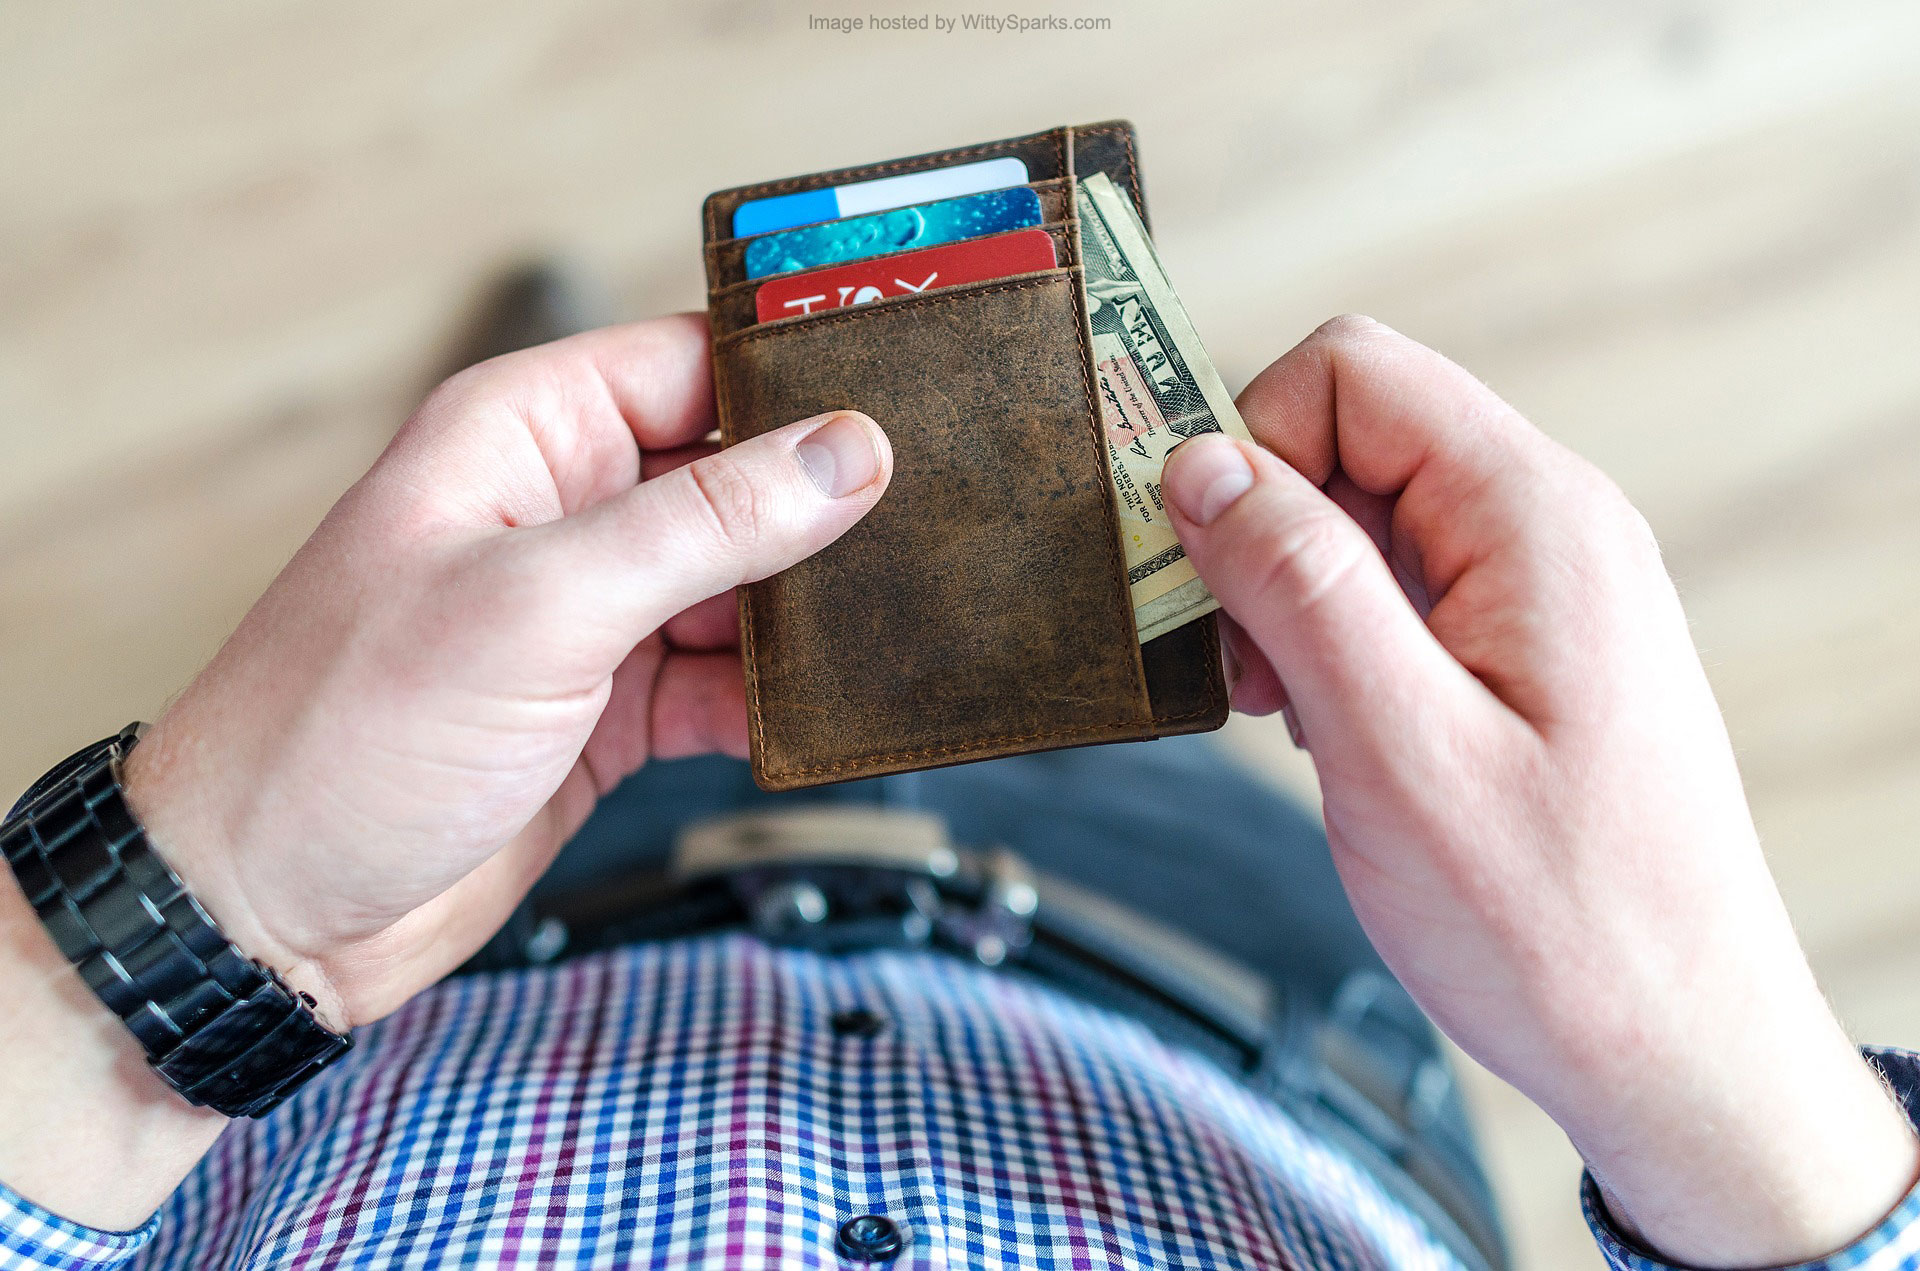 Personal Finance - managing your money